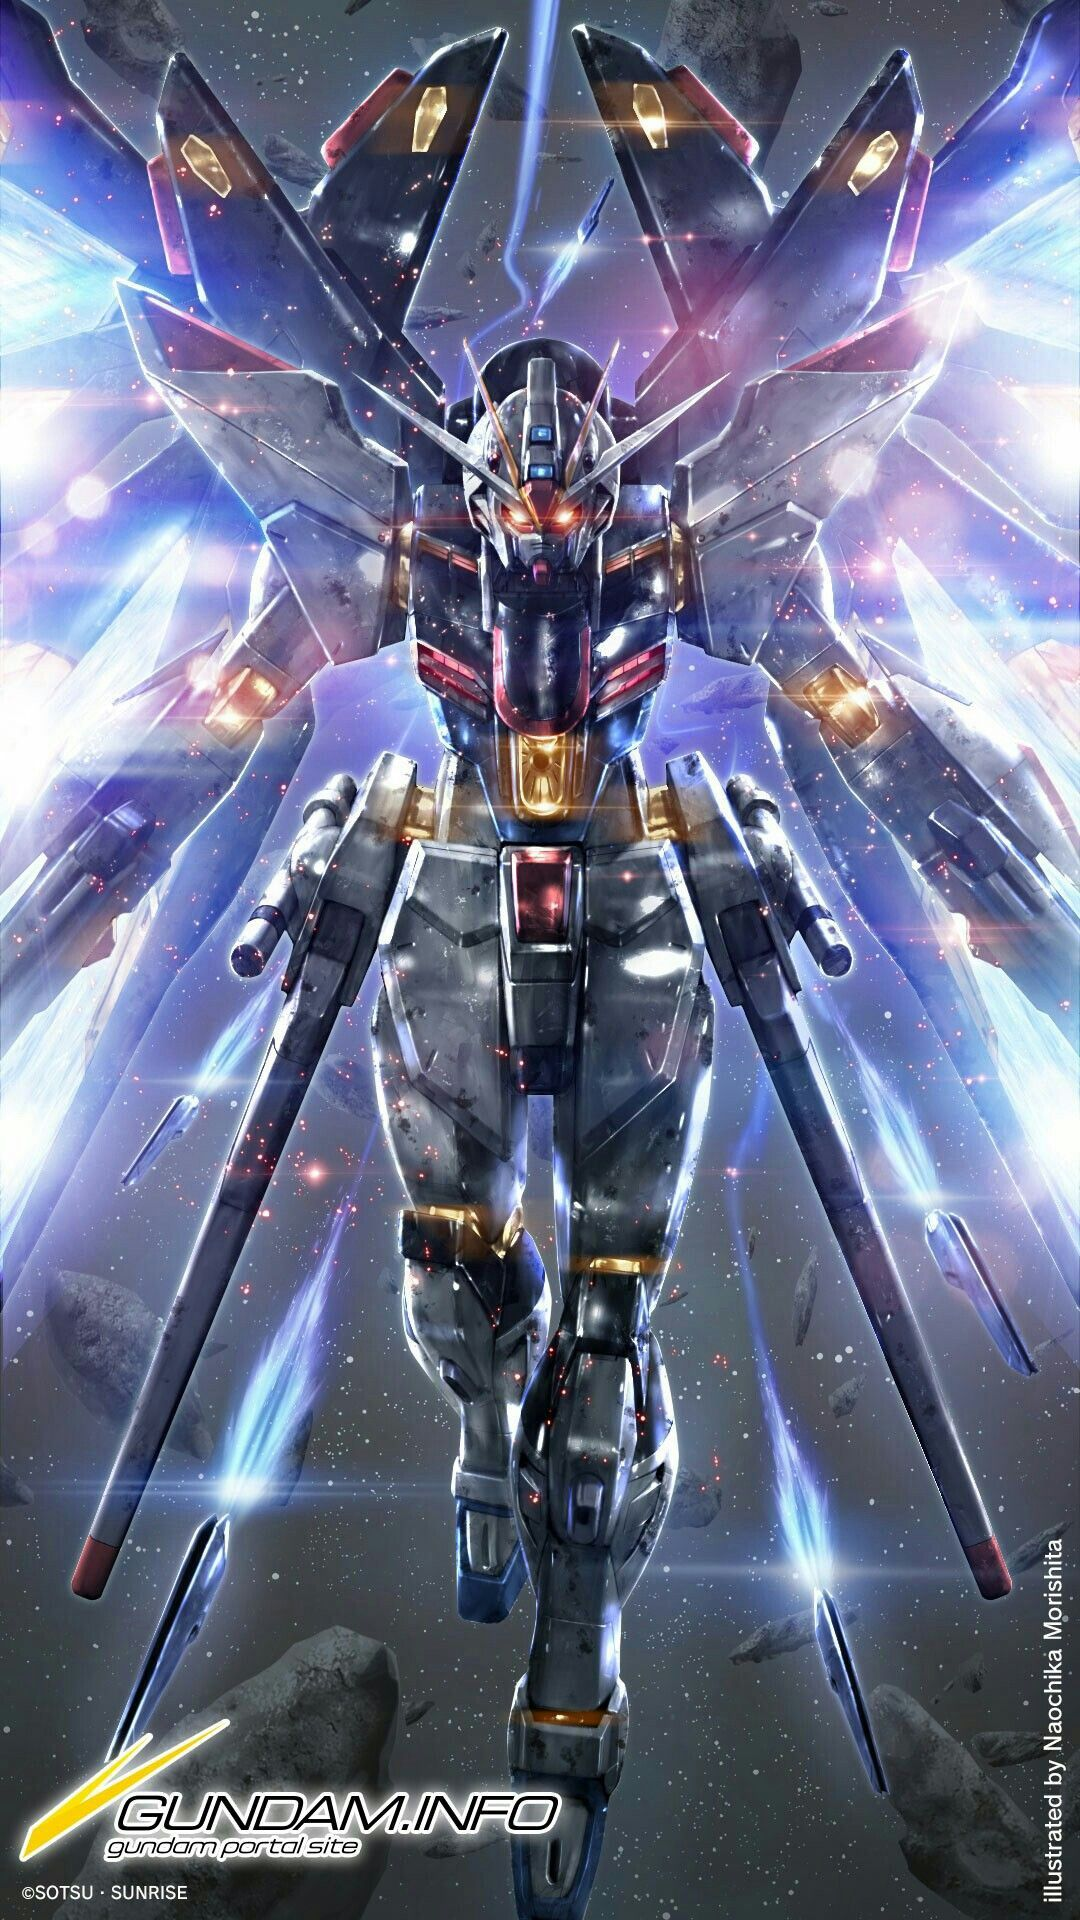 Pin by Christopher Choi on gunpla (With images) Gundam